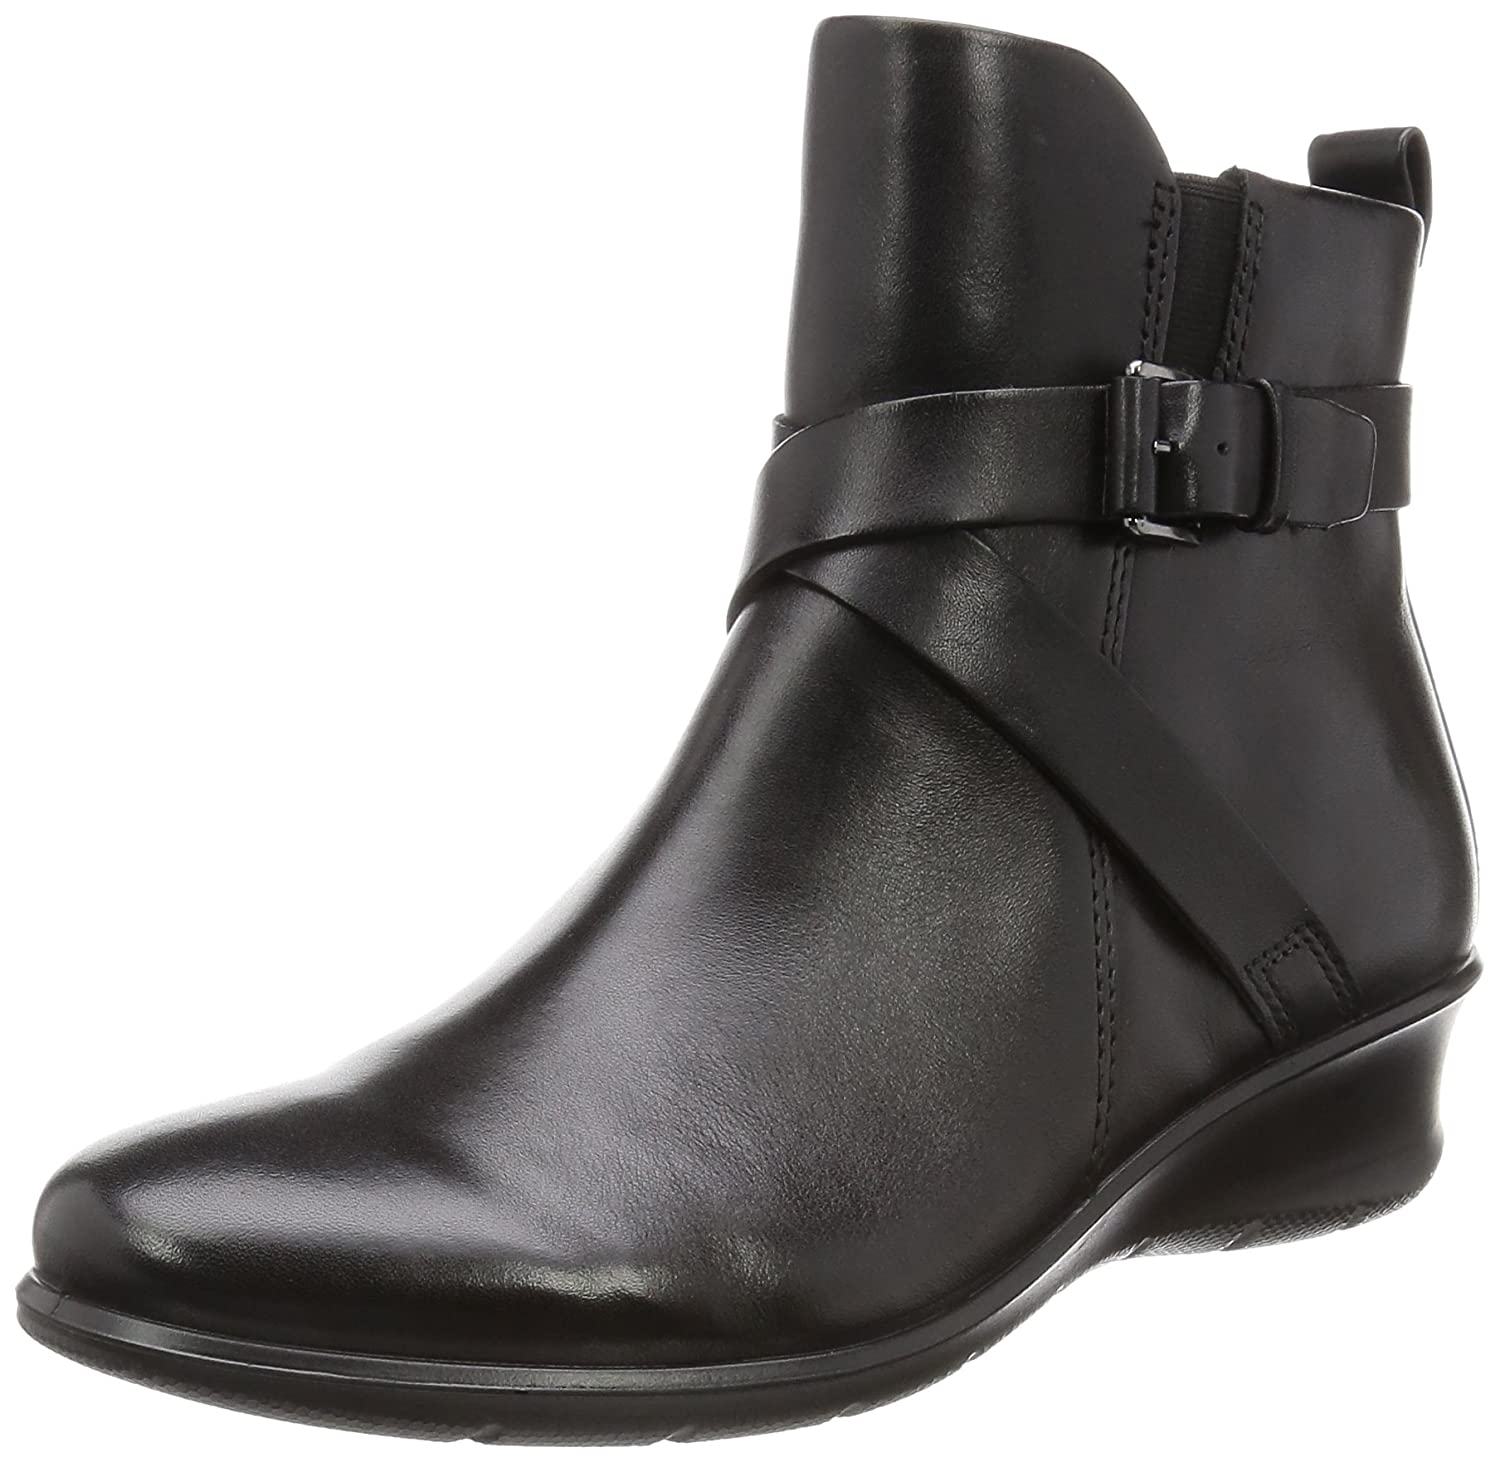 ECCO Women's Felicia Ankle Buckle Boot B01AAUGMU6 37 EU/6-6.5 M US|Black